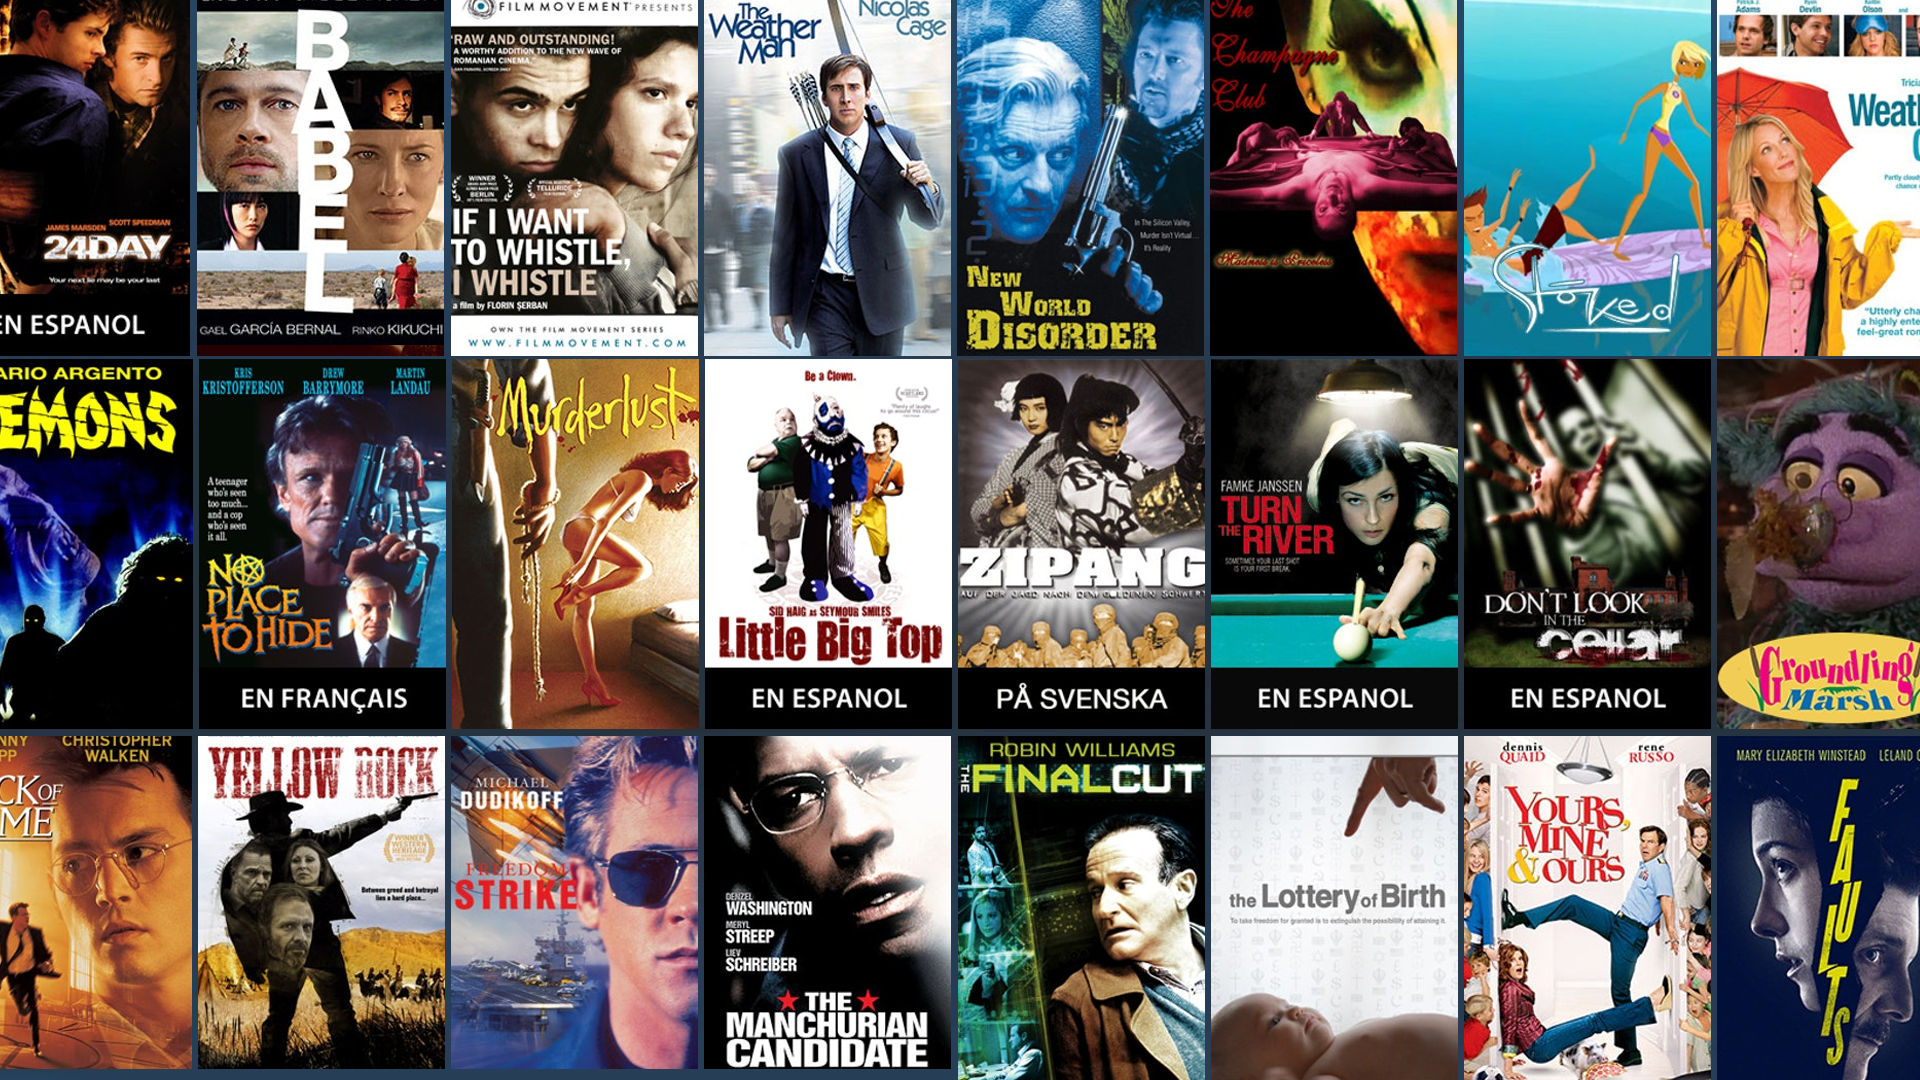 Popcornflix - Best putlocker alternatives on the web today